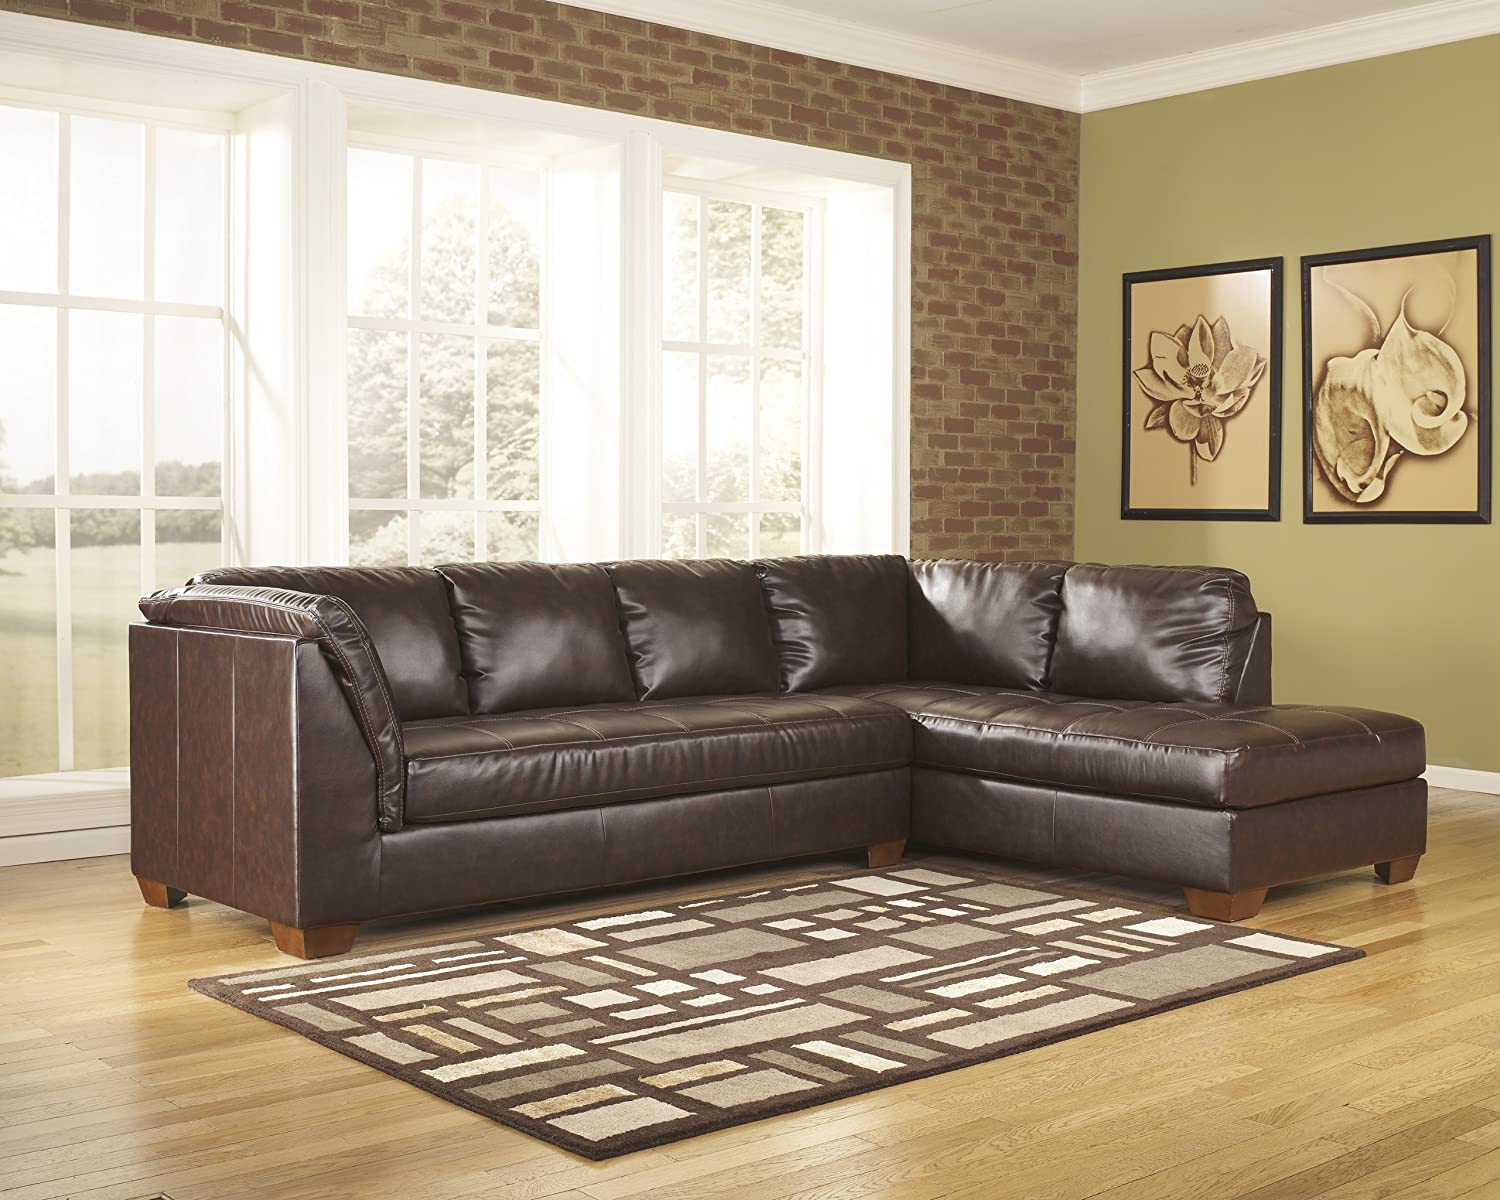 Contemporary Mahogany DuraBlend Match Upholstery Sofa Sectional With LAF Chaise